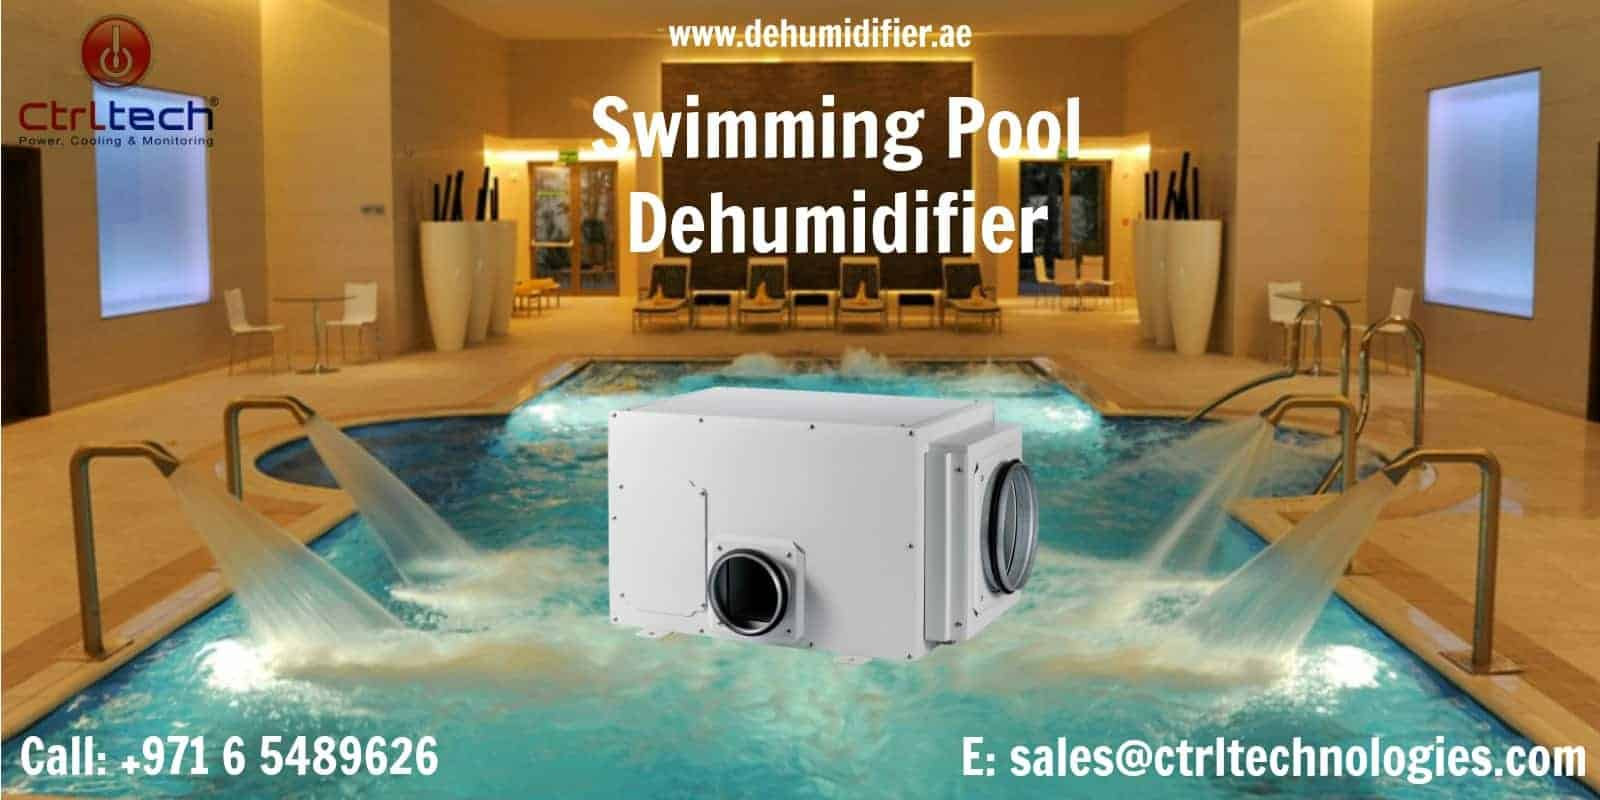 Swimming pool Dehumidifier in UAE, Saudi Arabia.